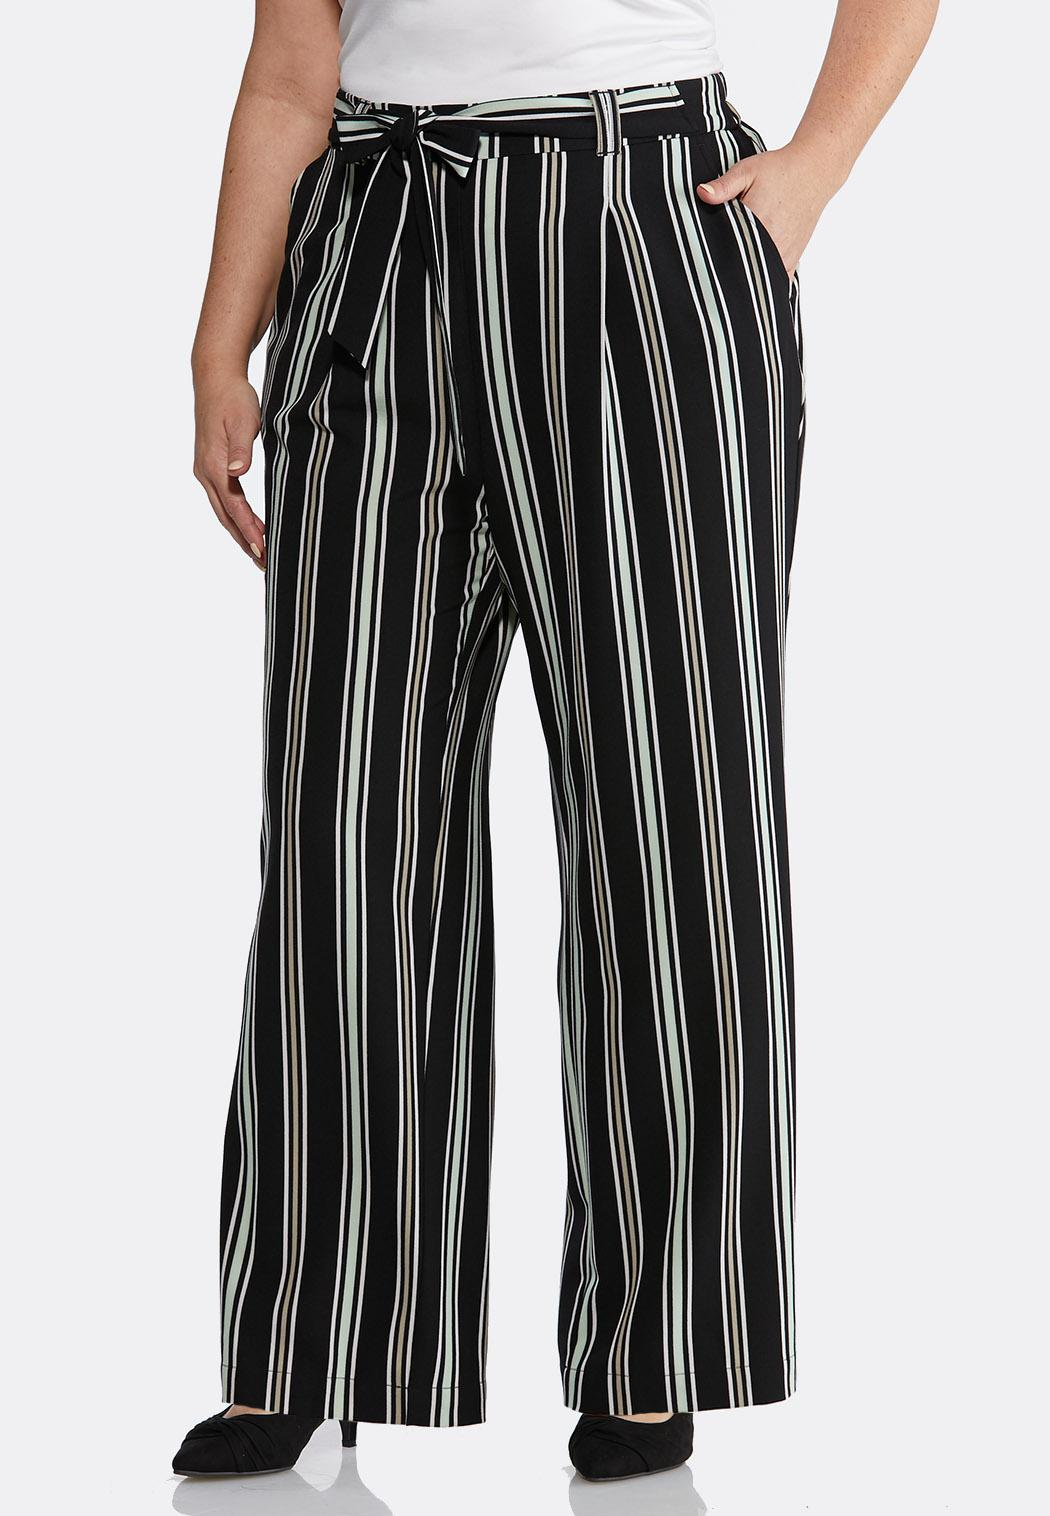 0128c4b8cc Plus Size Striped Tie Front Palazzo Pants Wide Leg Cato Fashions